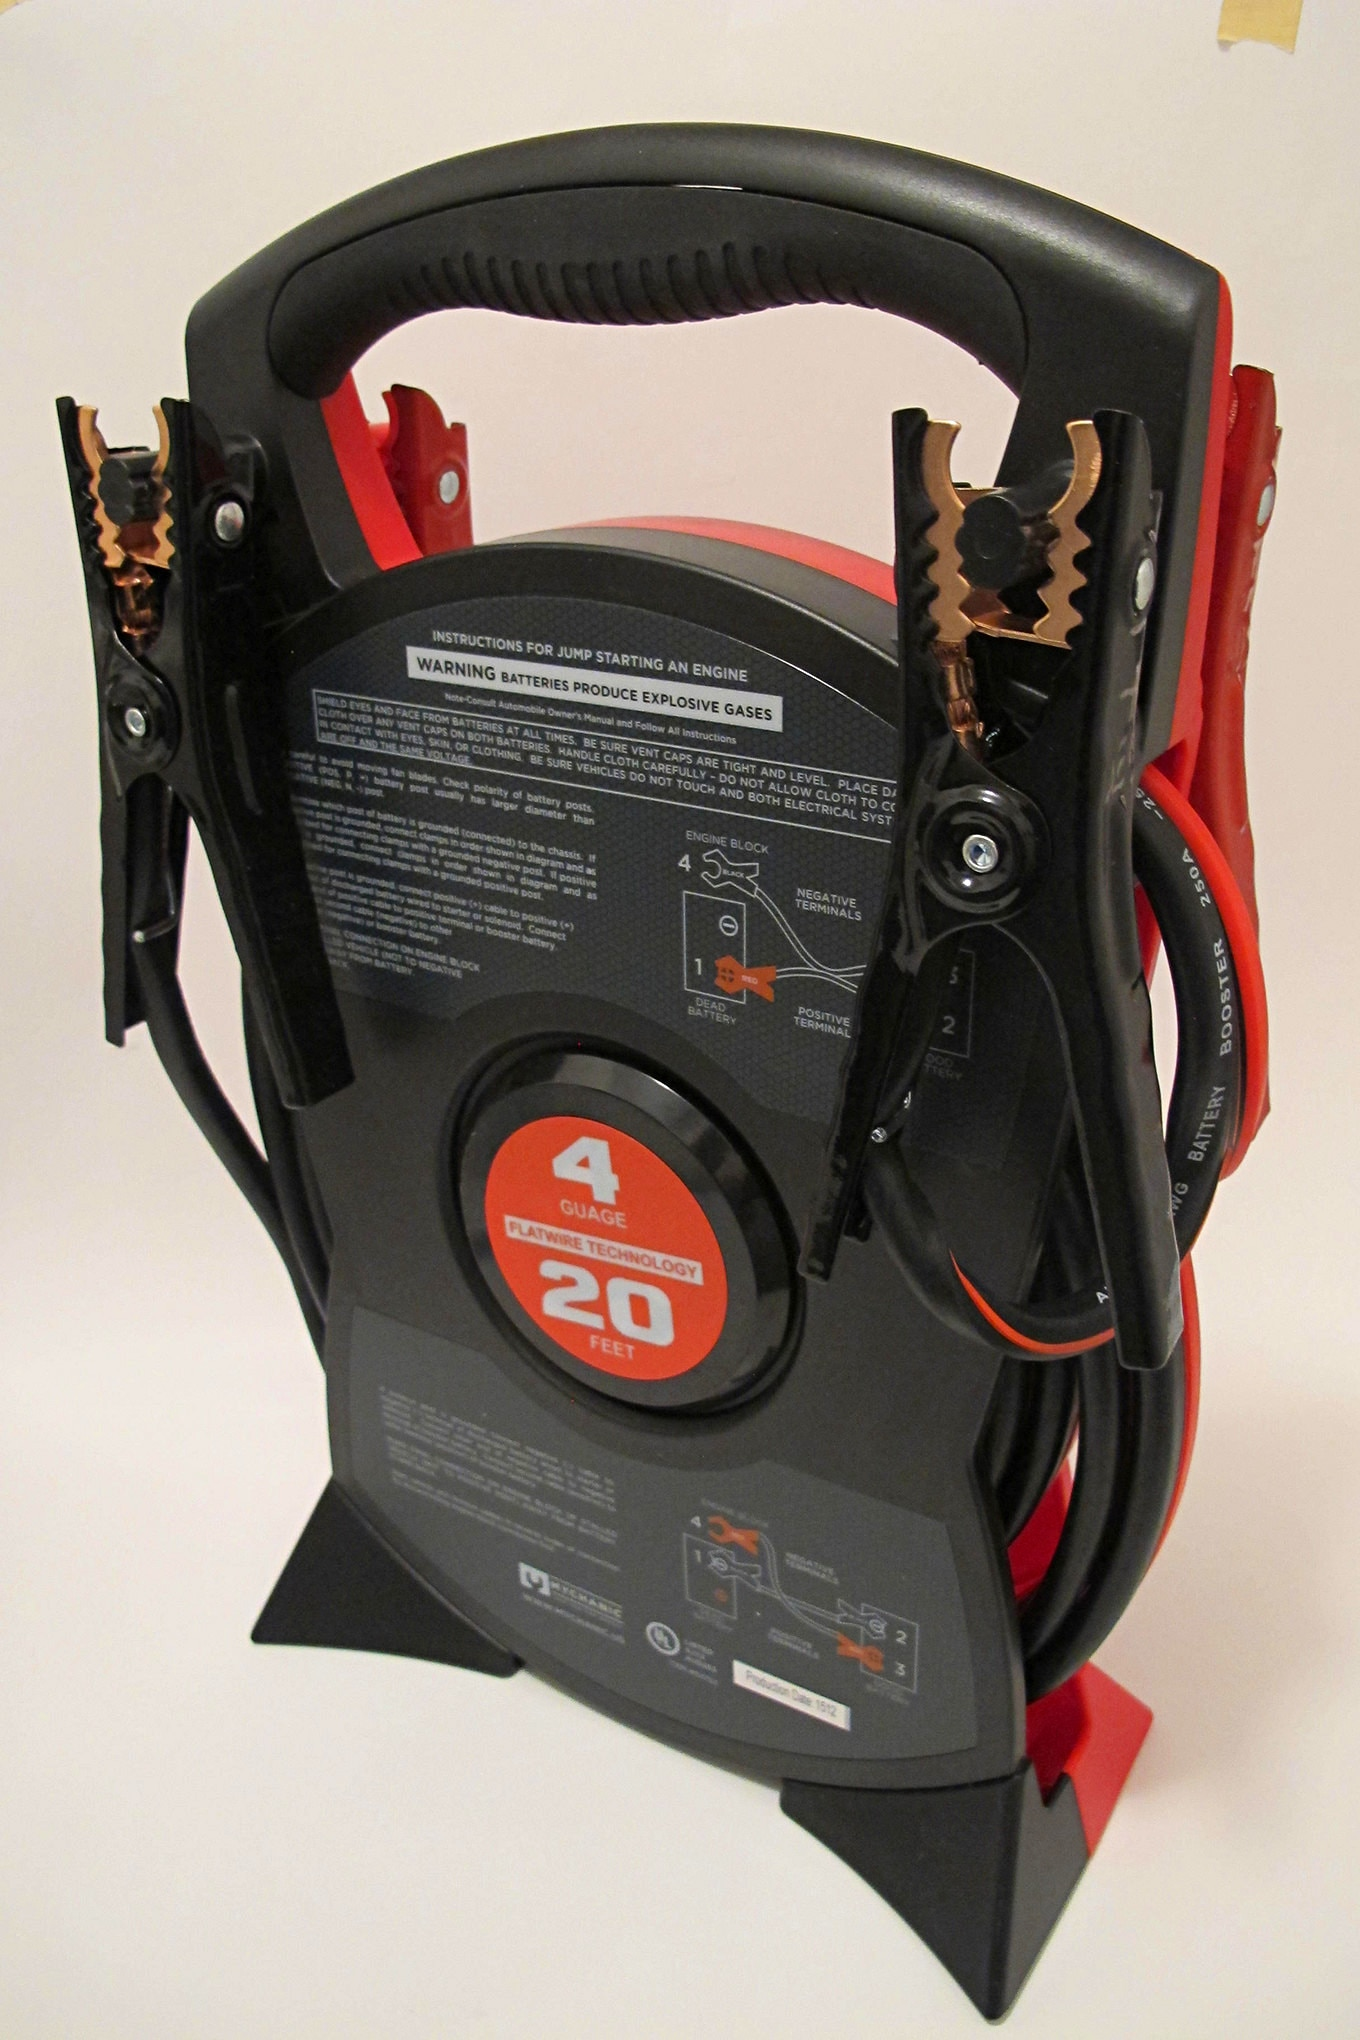 17 Mychanic Jump Drive Booster Cables